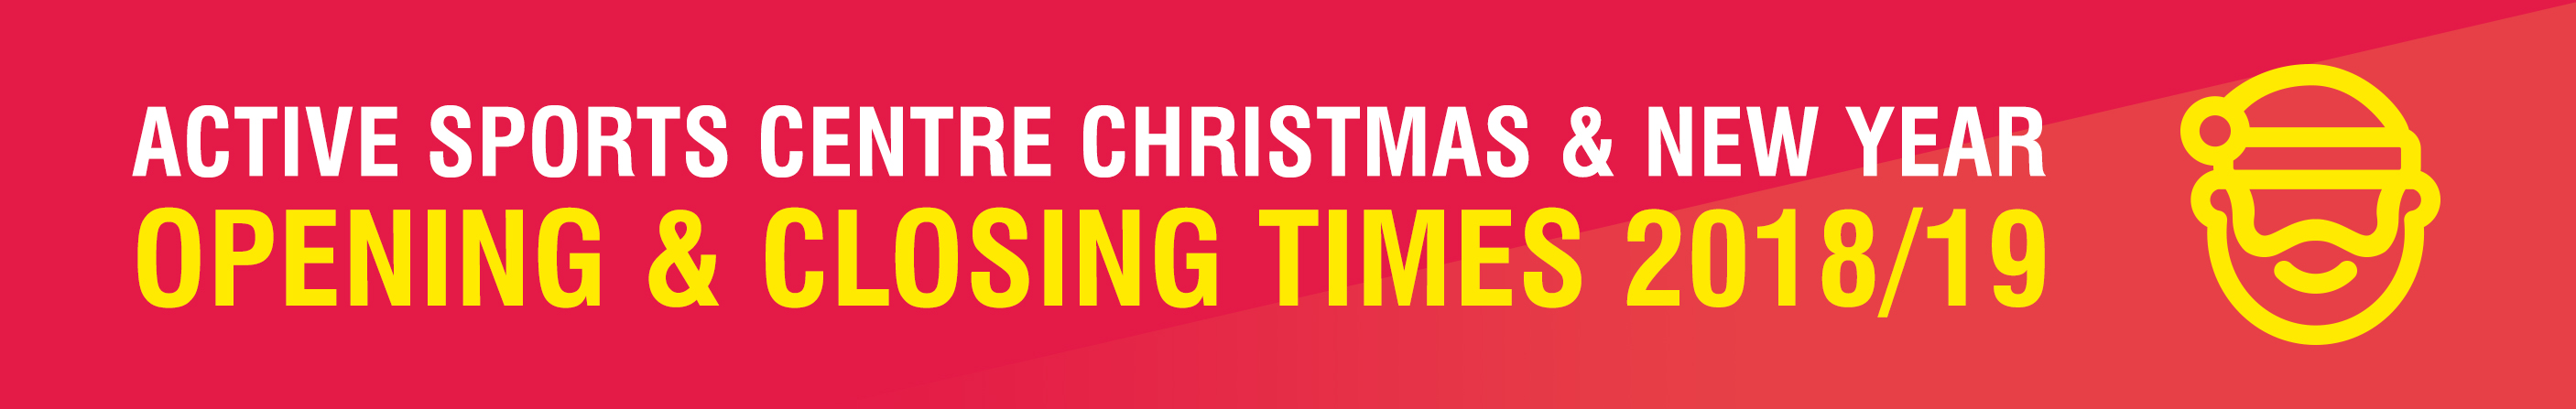 Active Christmas Opening Times